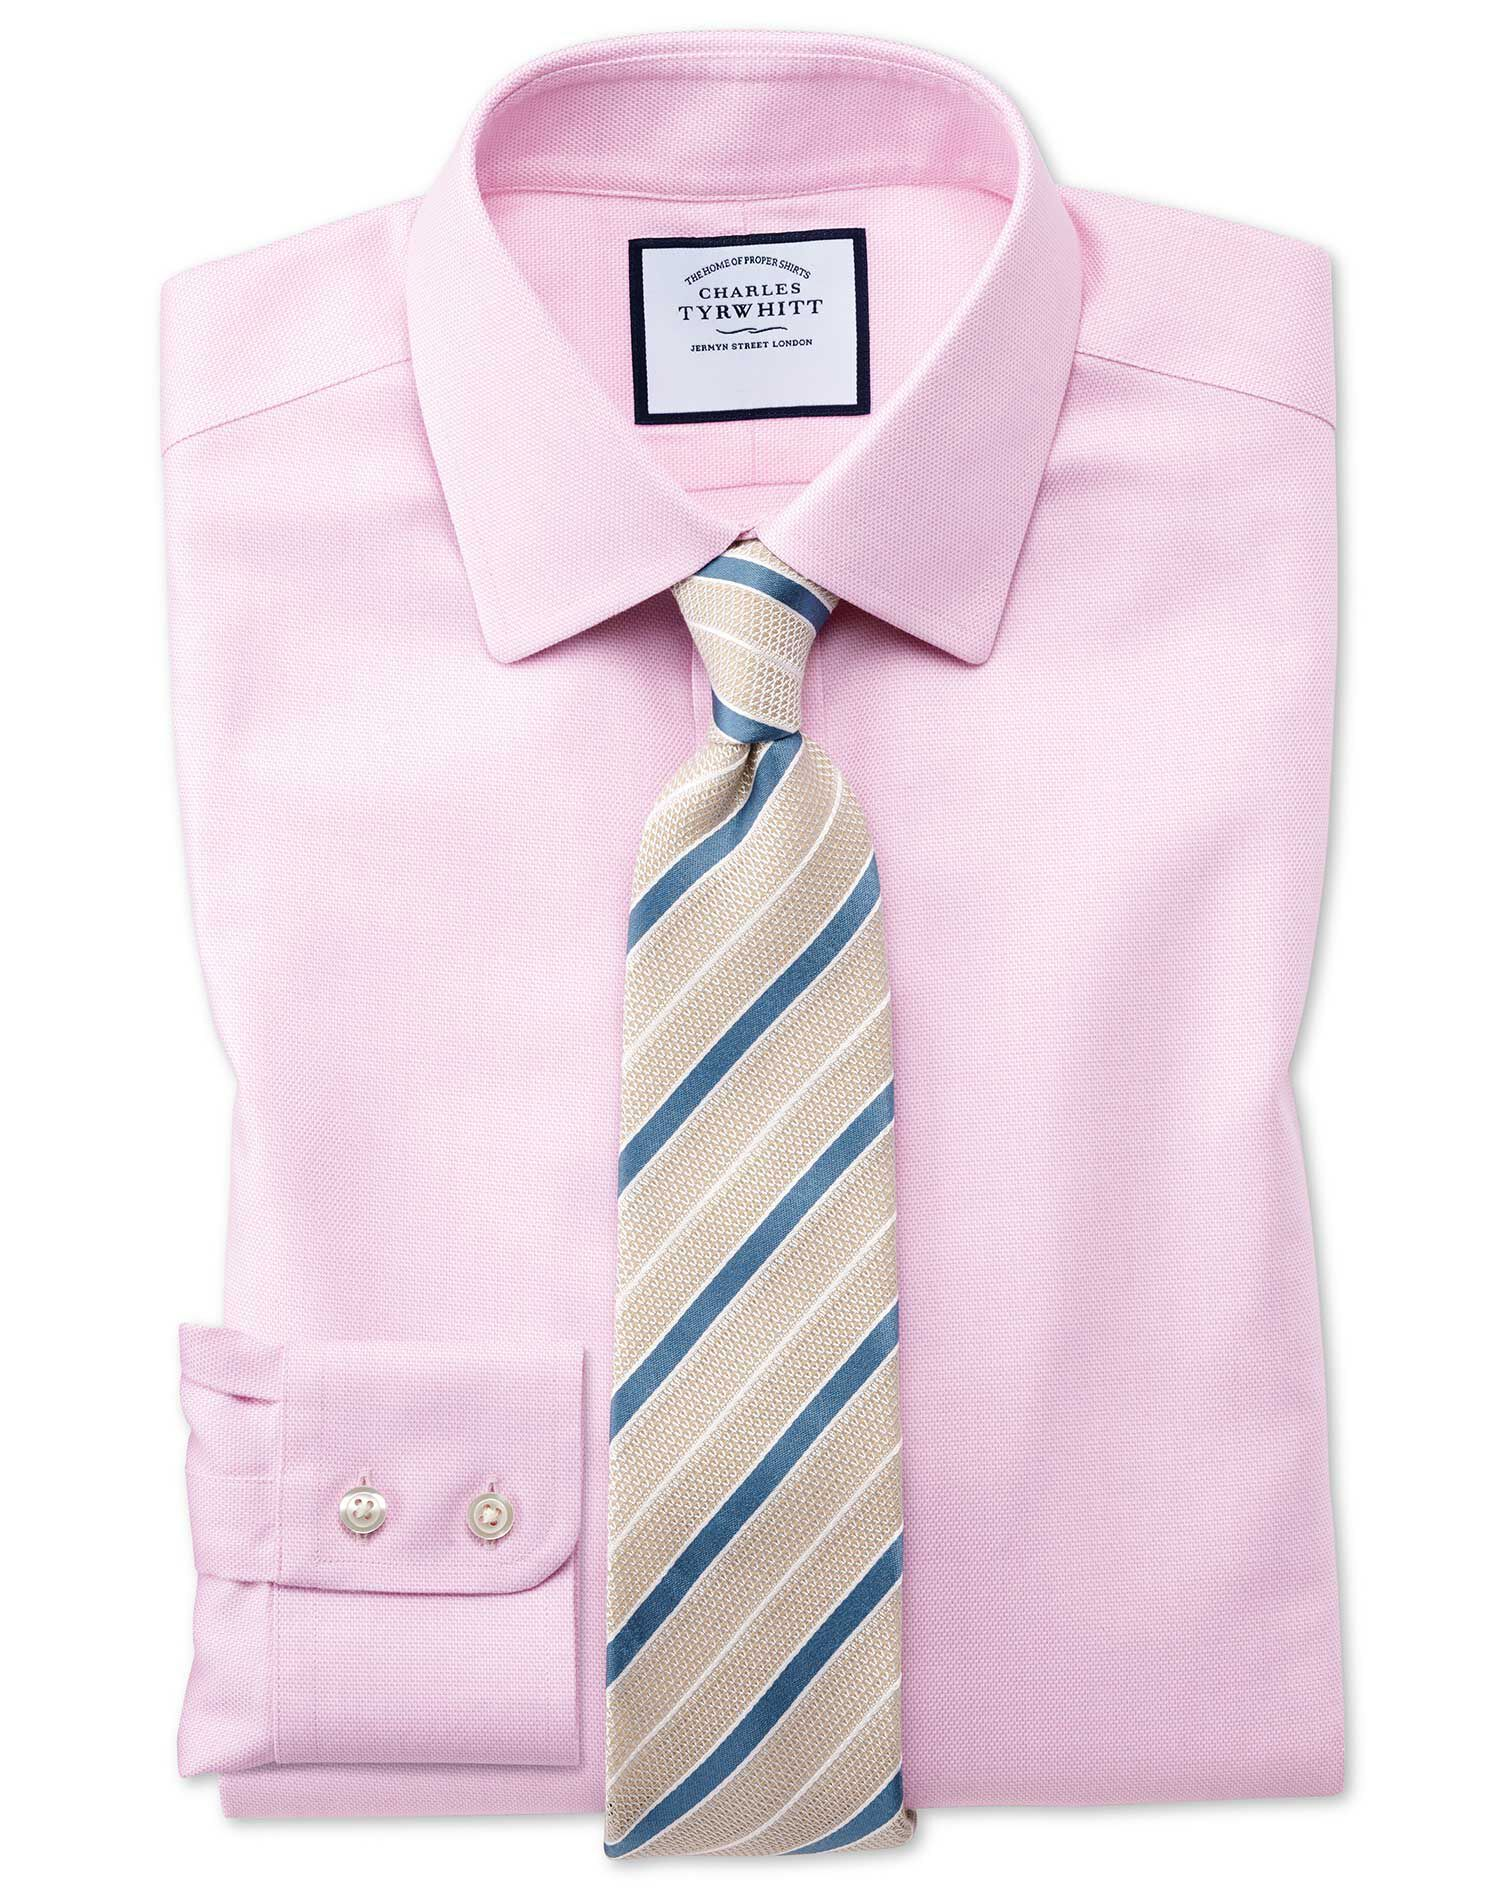 Slim Fit Non-Iron Step Weave Pink Cotton Formal Shirt Double Cuff Size 16.5/33 by Charles Tyrwhitt